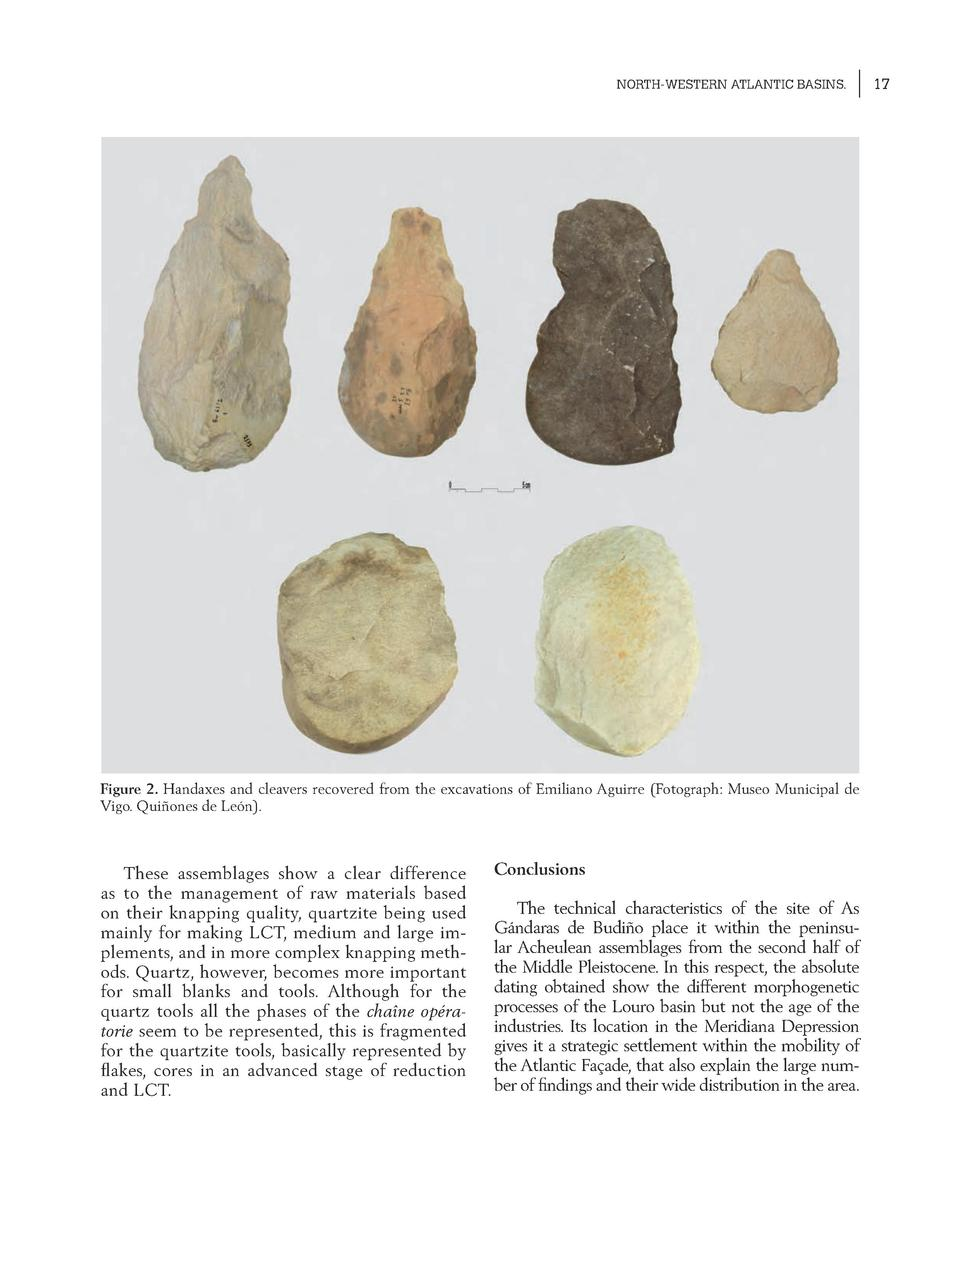 NORTH-WESTERN ATLANTIC BASINS.  Figure 2. Handaxes and cleavers recovered from the excavations of Emiliano Aguirre  Fotogr...